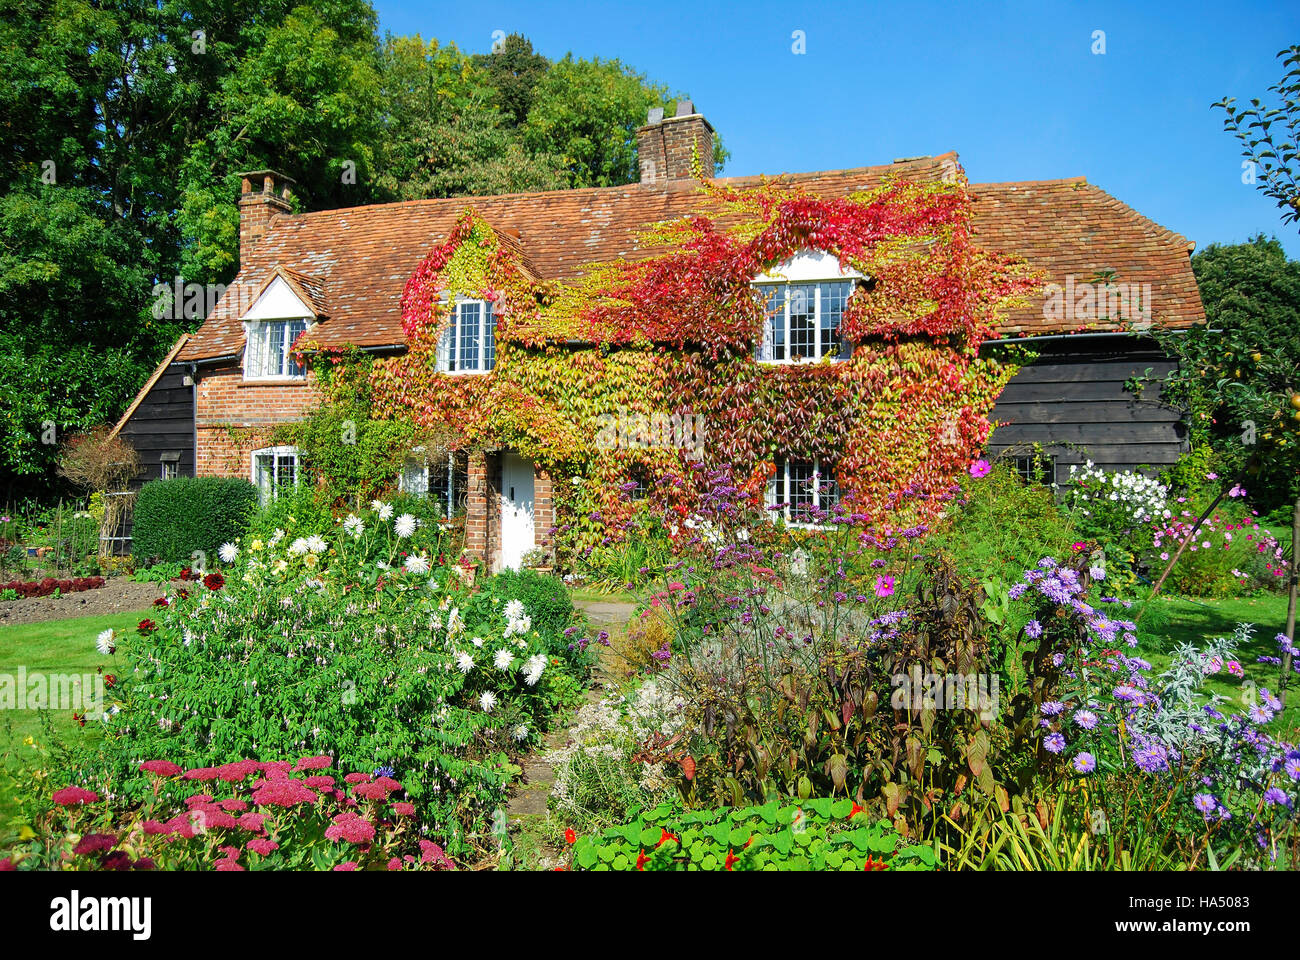 Period cottage and garden, Chartridge, Buckinghamshire, England, United Kingdom - Stock Image